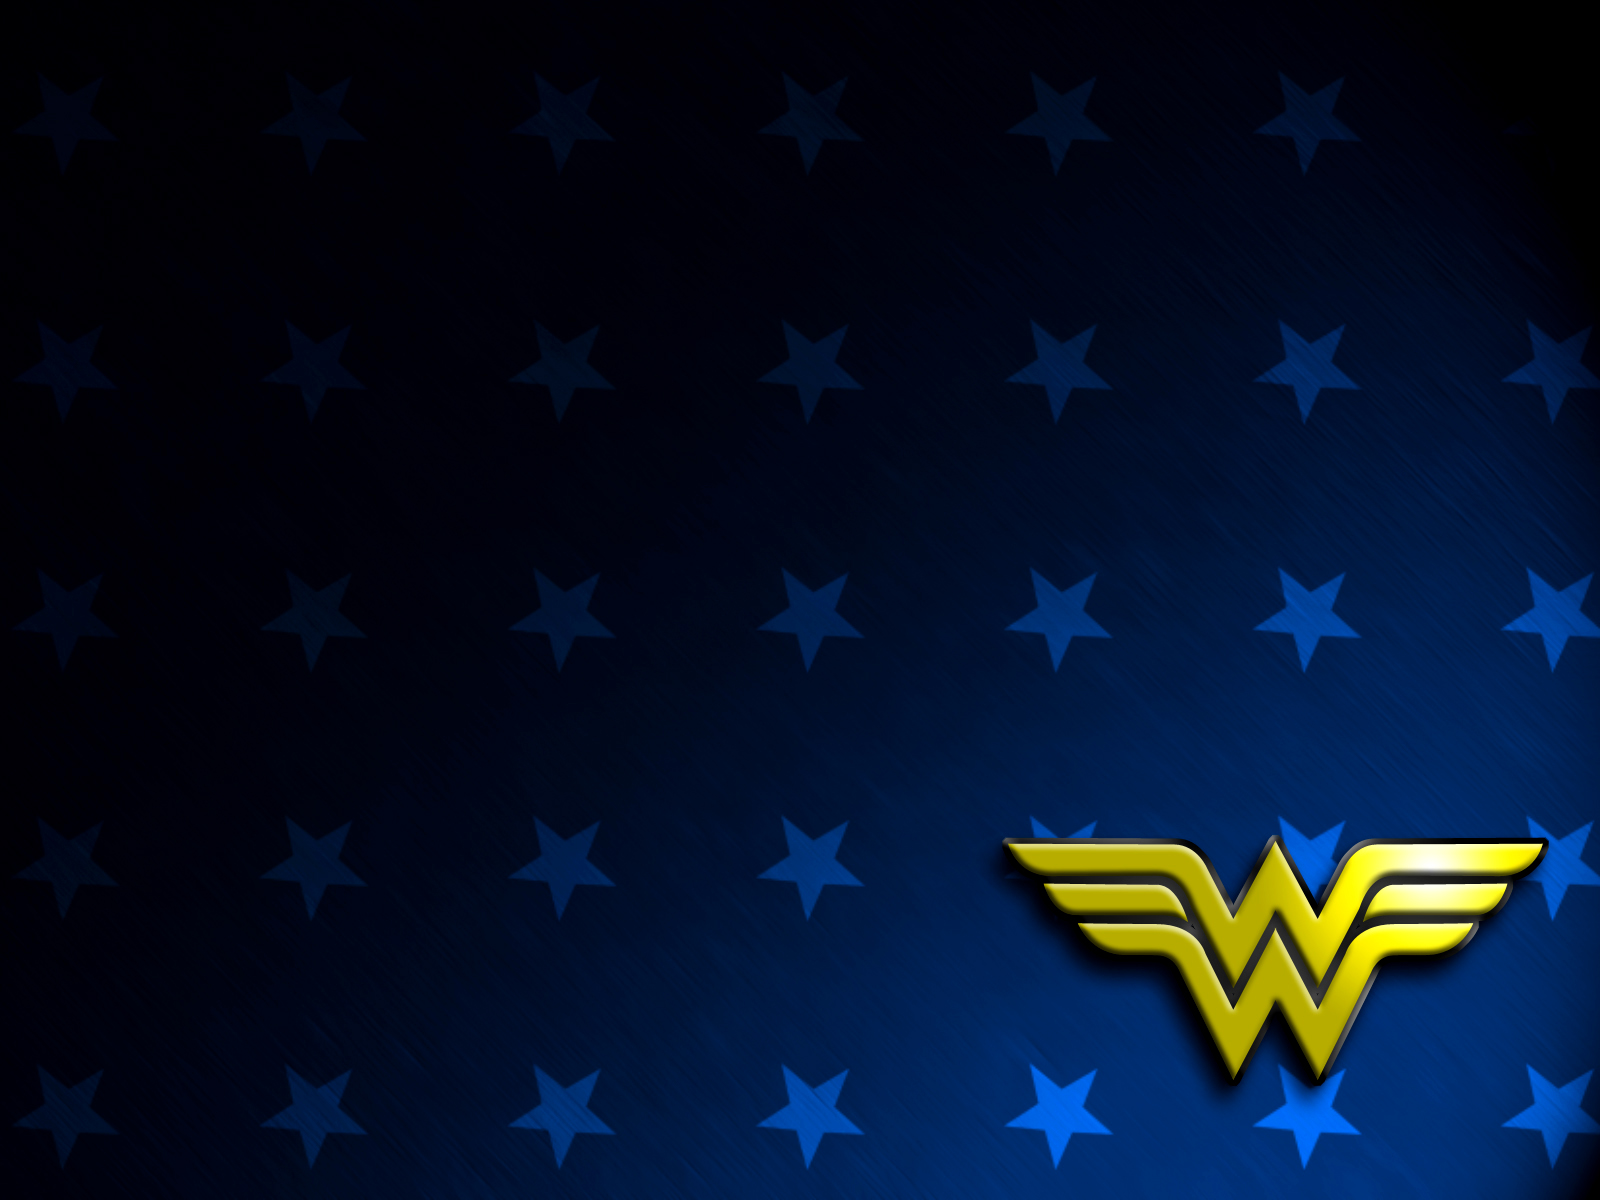 Wonder Woman Hd Wallpapers Wallpapersafari